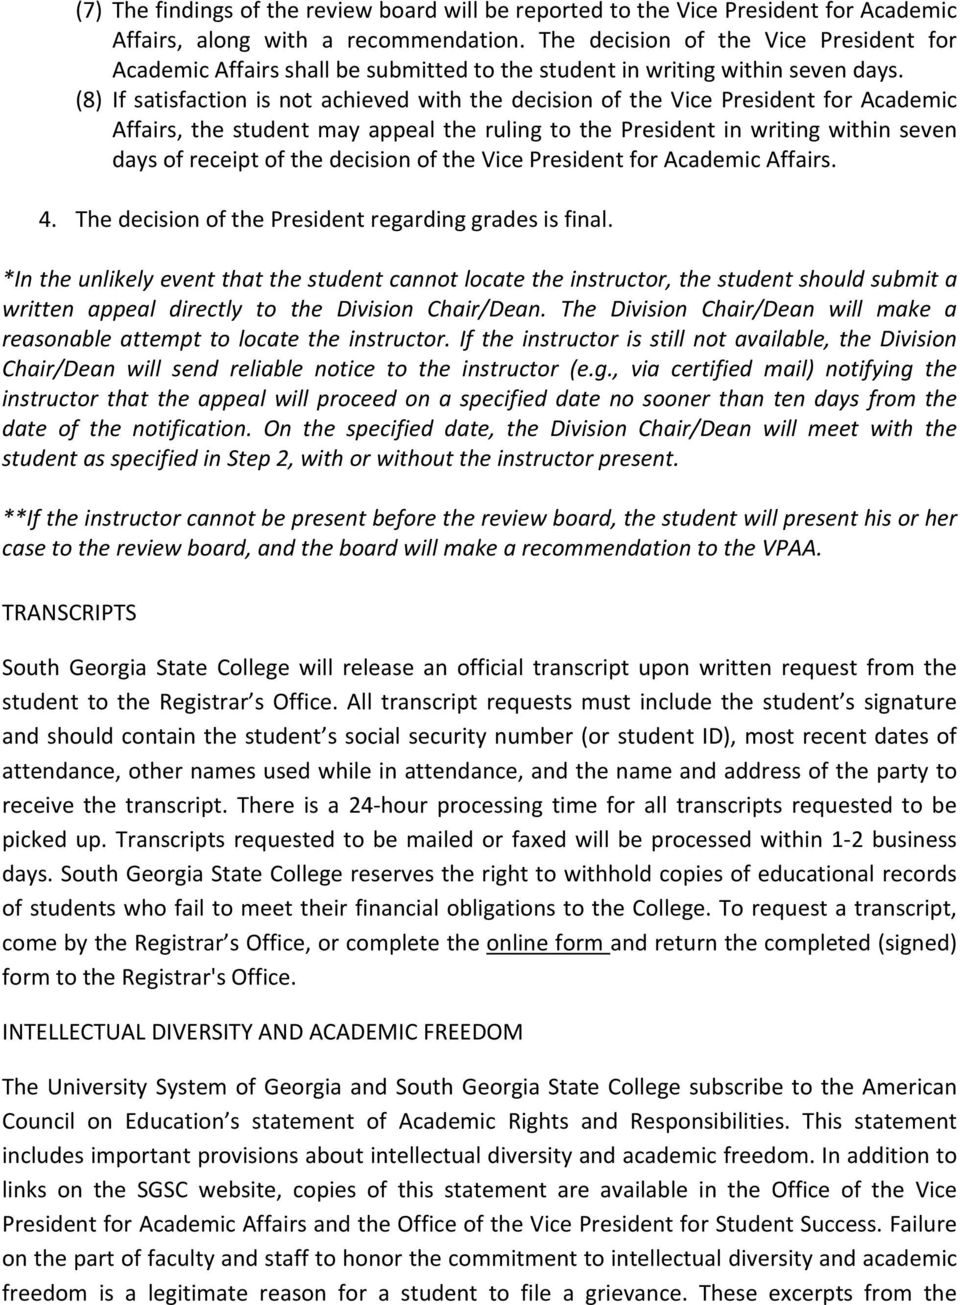 (8) If satisfaction is not achieved with the decision of the Vice President for Academic Affairs, the student may appeal the ruling to the President in writing within seven days of receipt of the